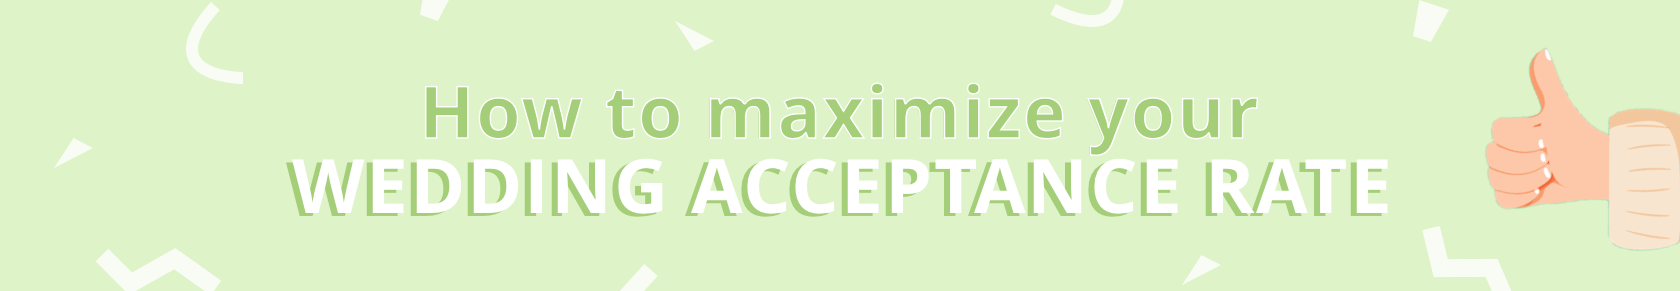 How to maximize your wedding acceptance rate with online rsvps